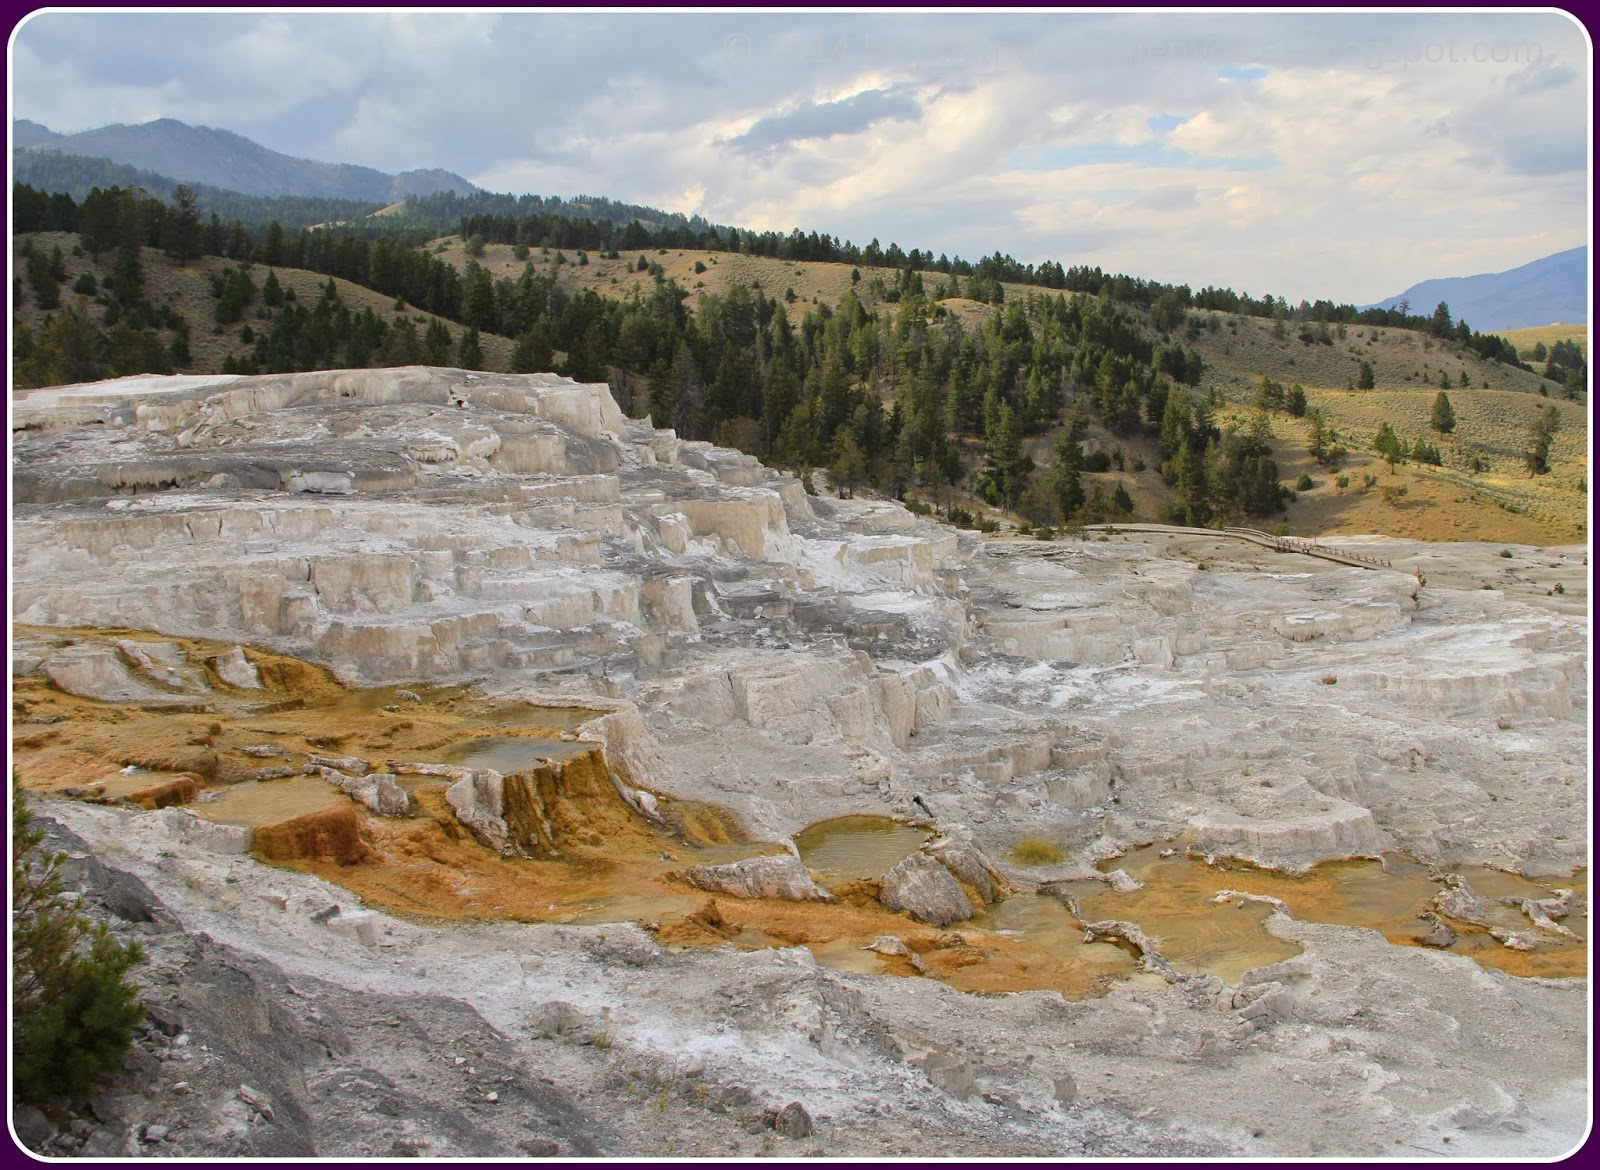 The diaries mammoth hot springs for Minerva terrace yellowstone